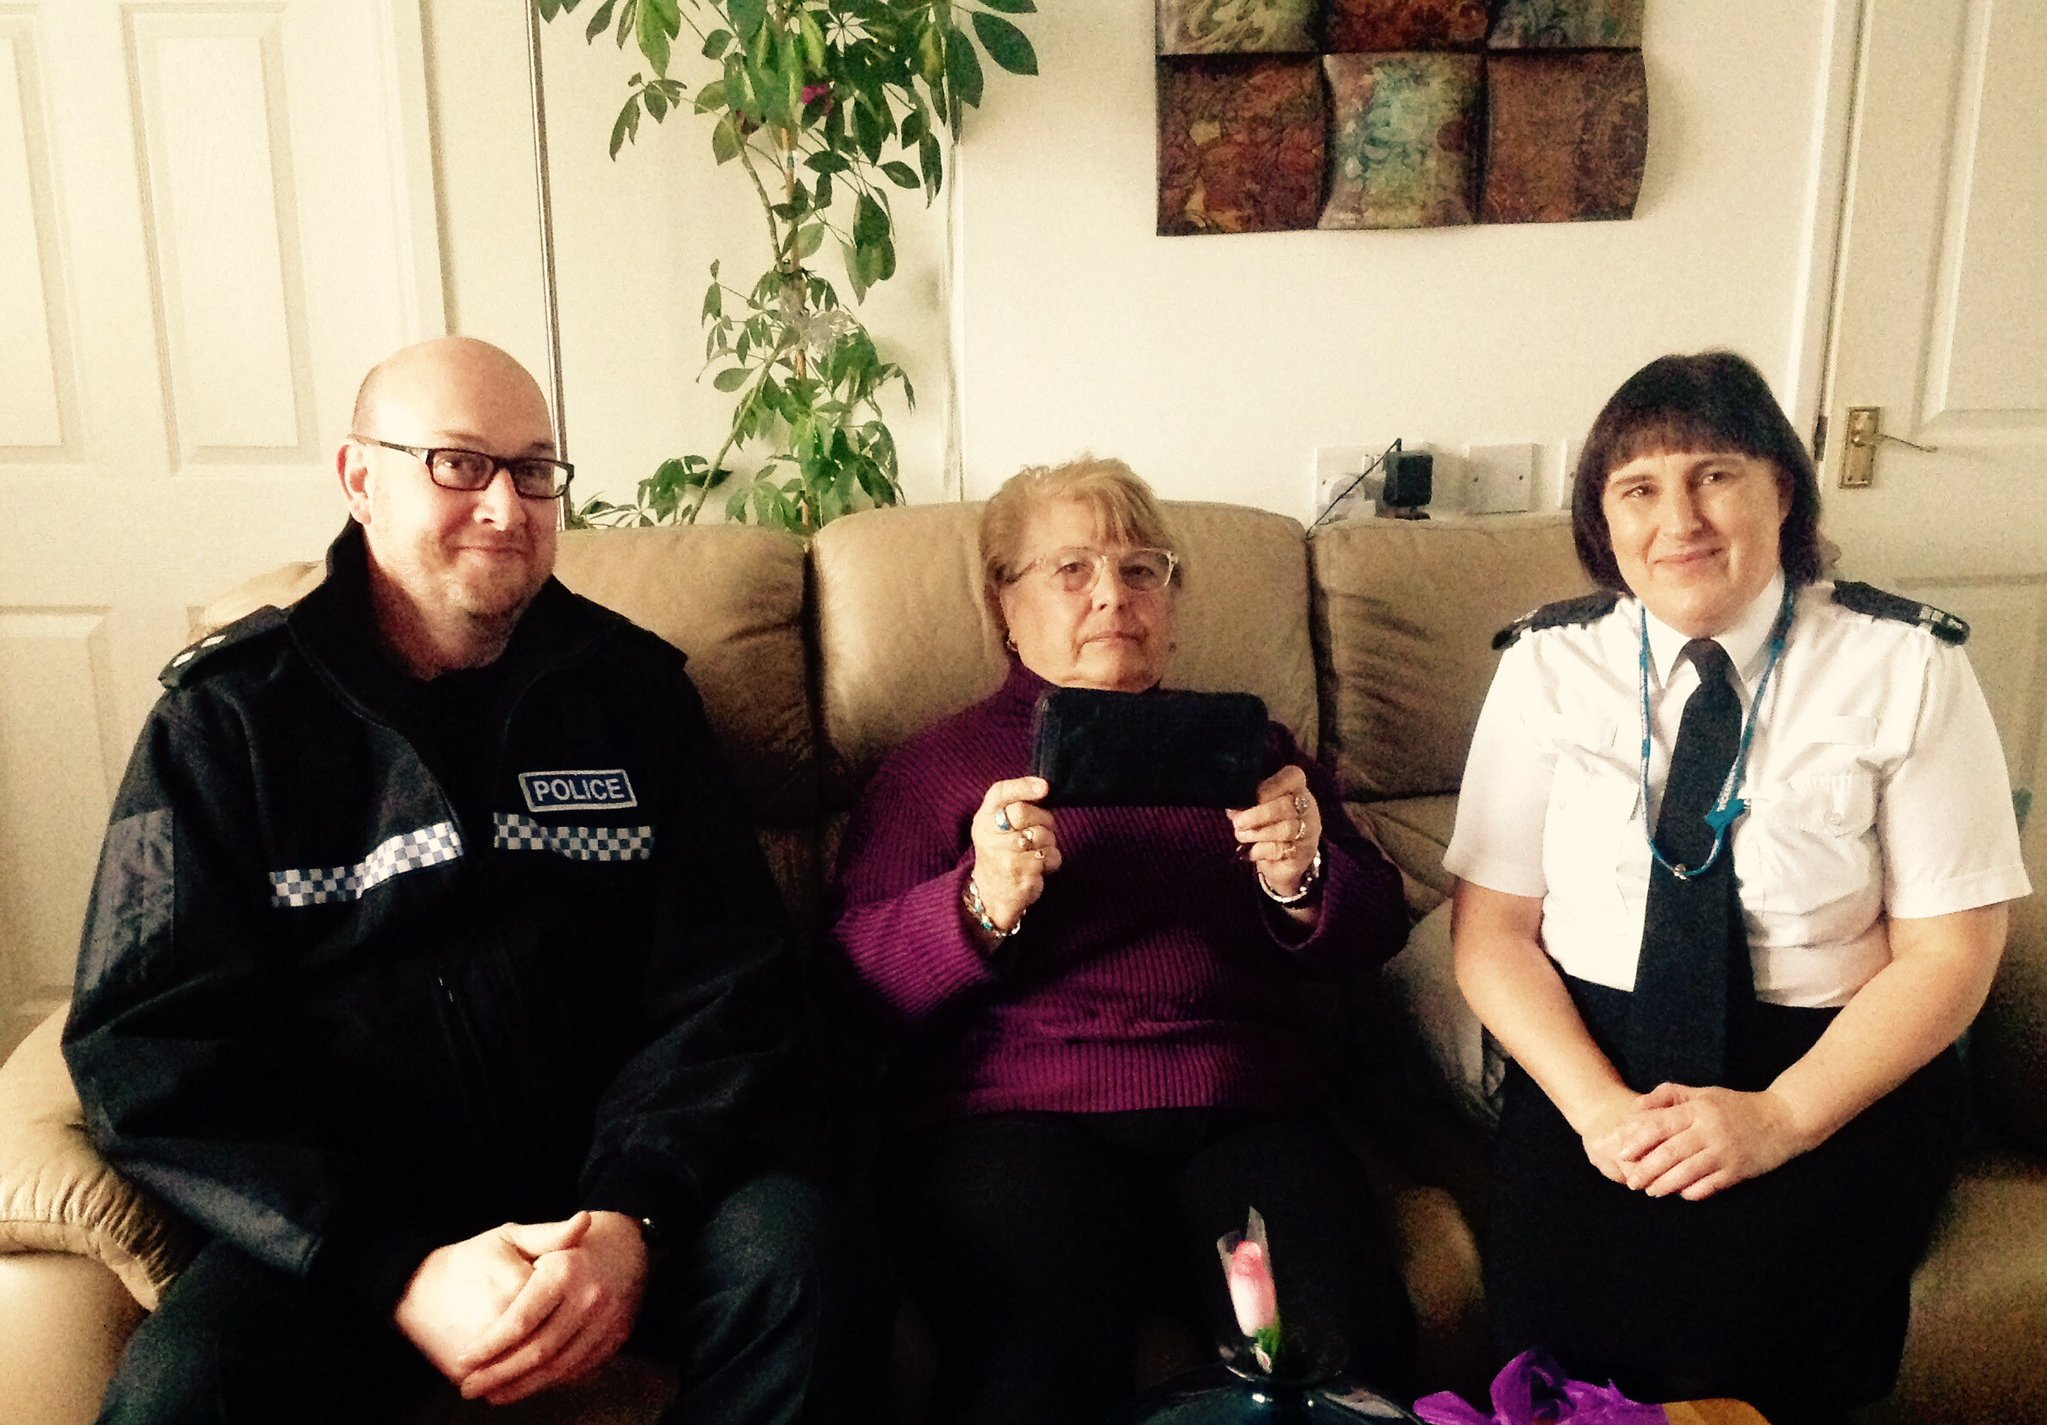 Police officers Tanya Lewis and Rich Bailey have returned the purse to Cathleen. Photo: West Mercia Police